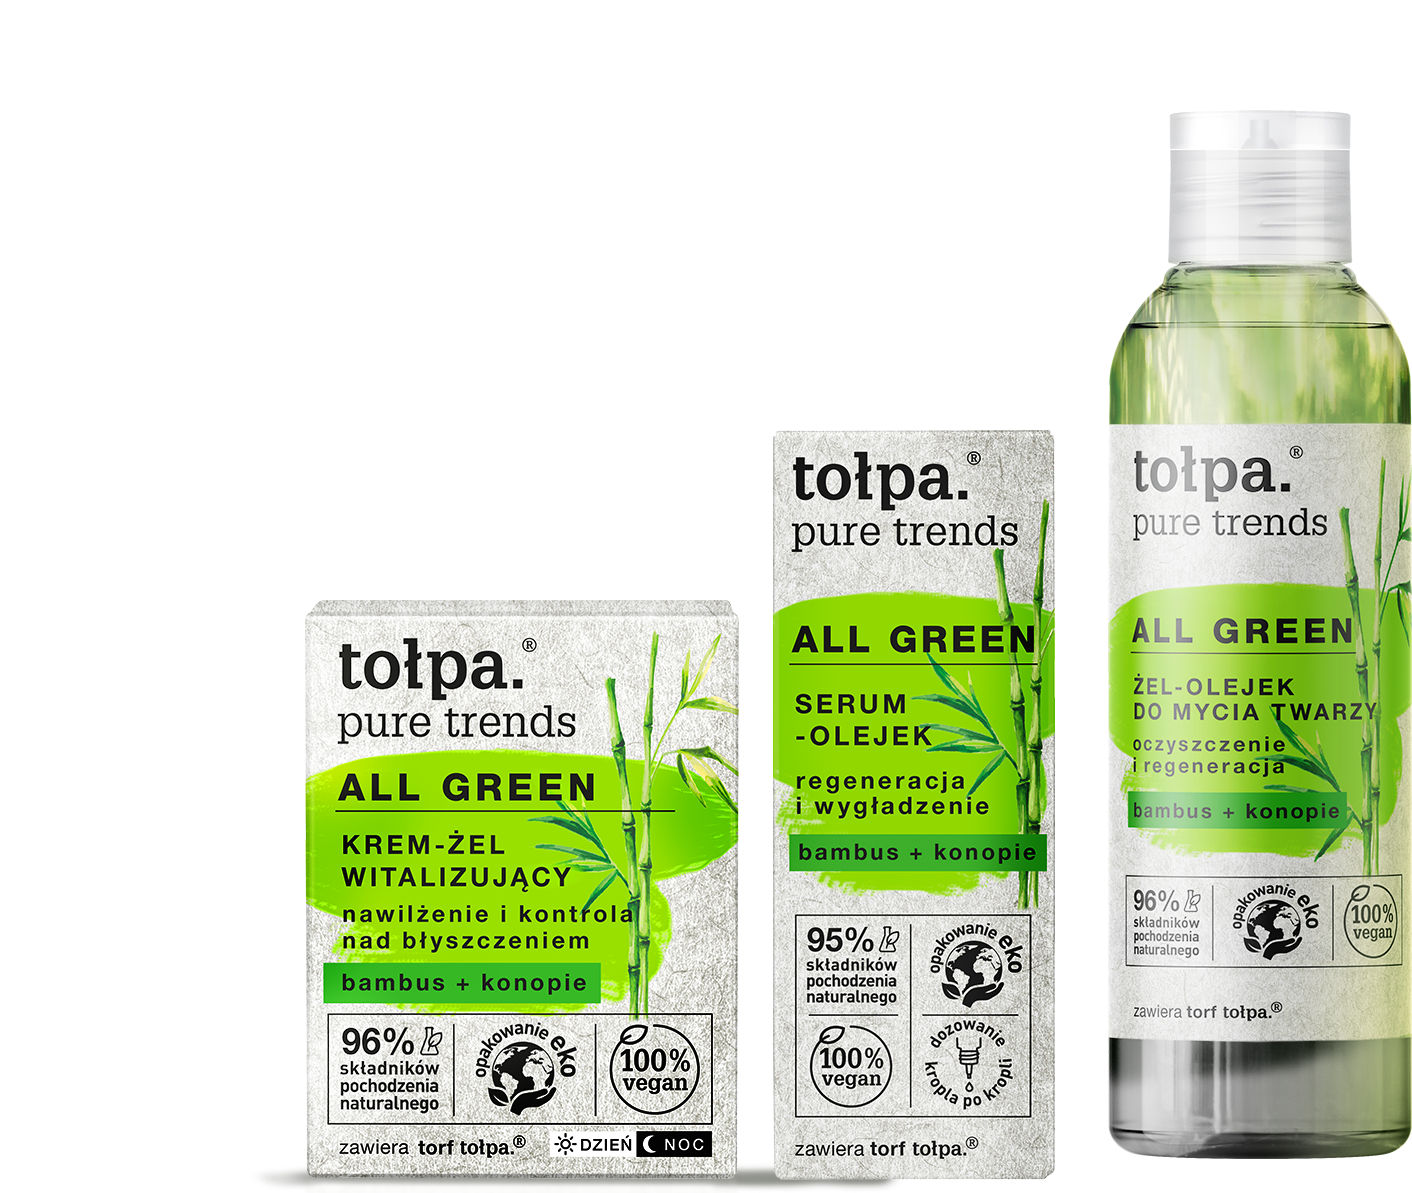 tołpa pure trends - all green